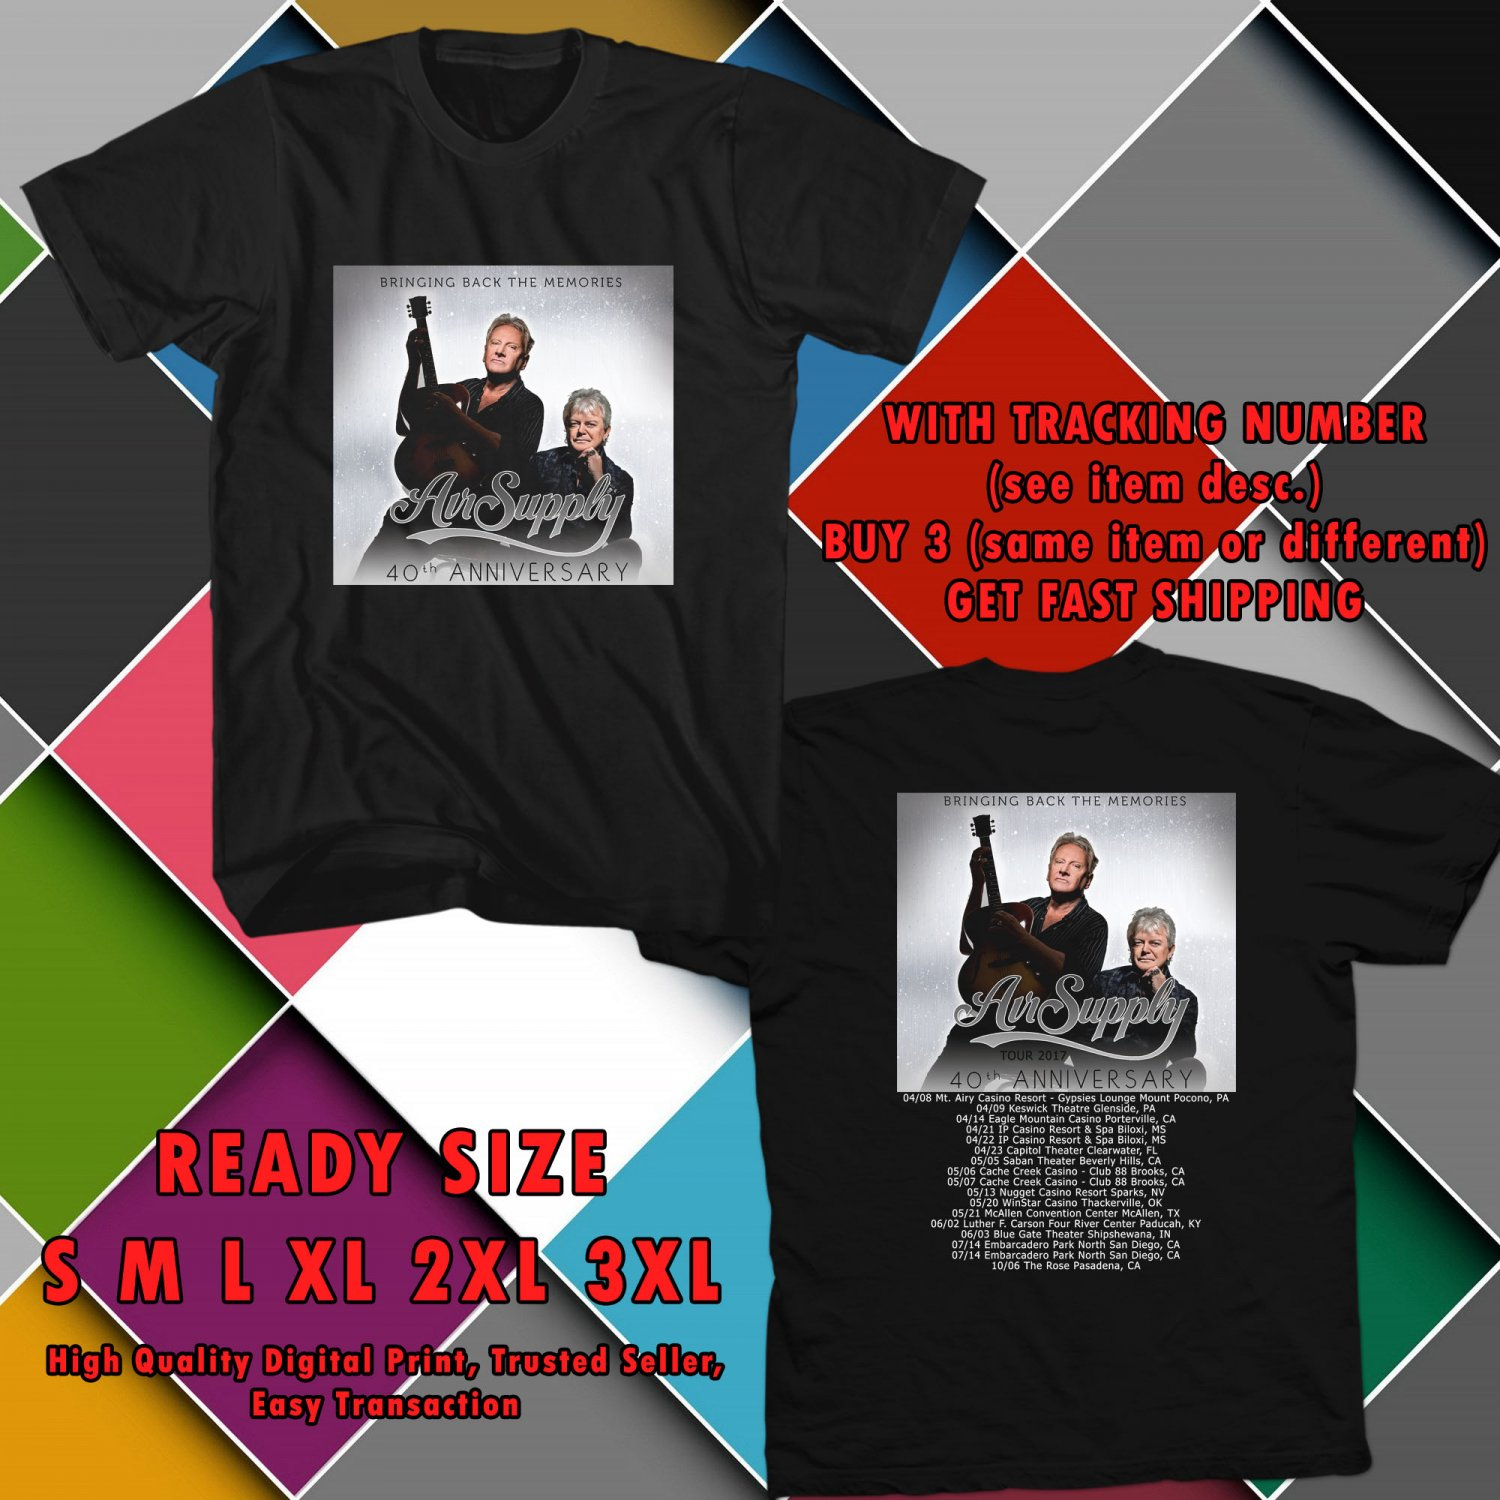 NEW AIR SUPPLY UNITED STATES TOUR 2017 black TEE 2 SIDE DMTR 114